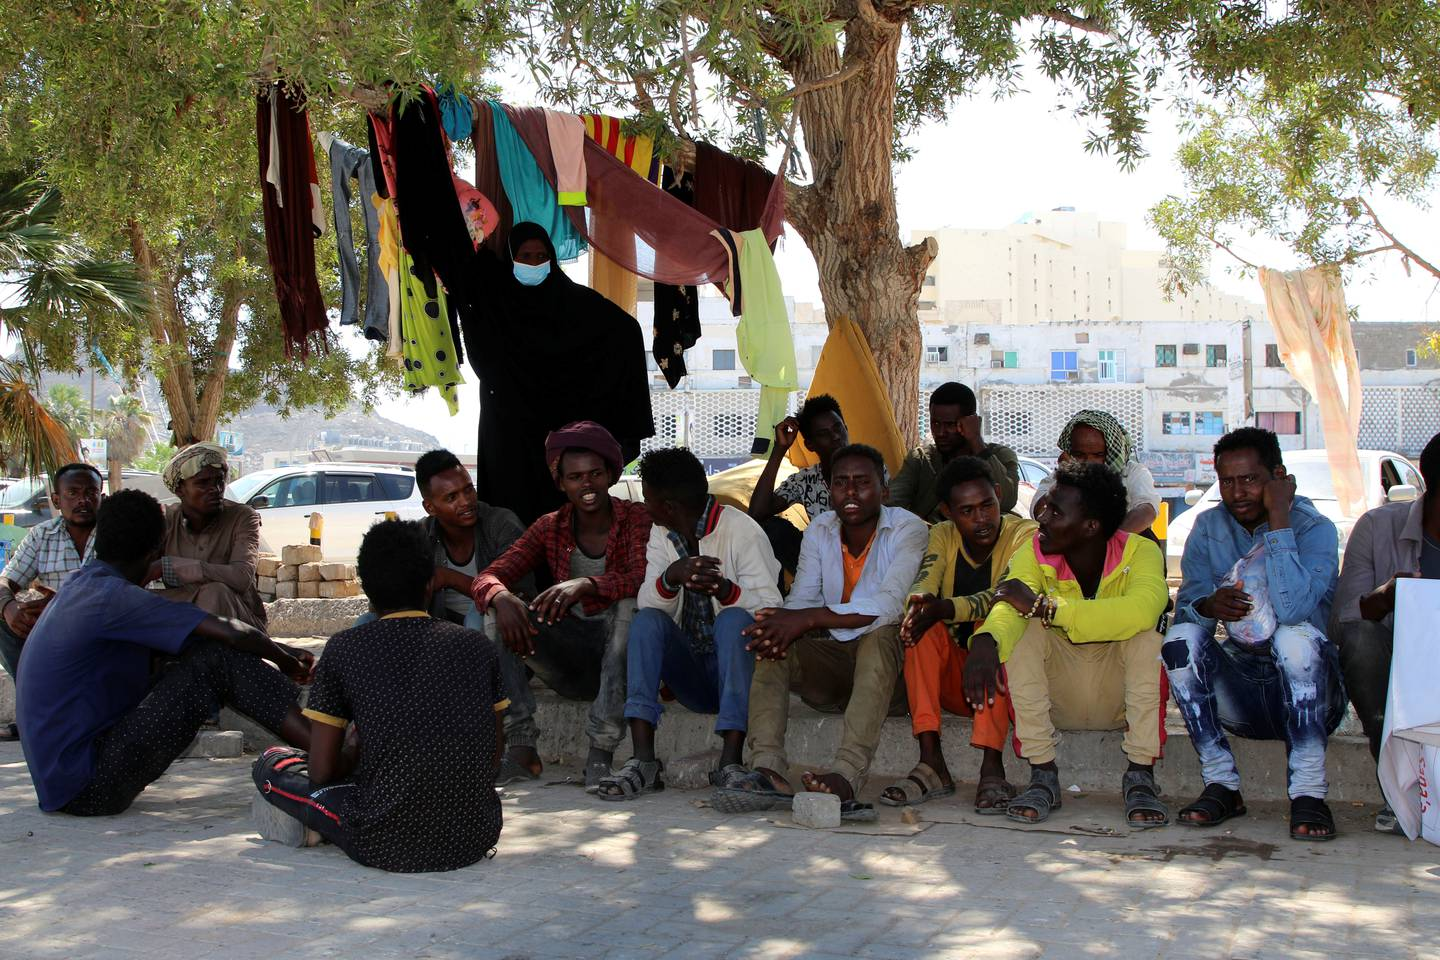 Ethiopian migrants gather to protest their treatment in the war-torn country during a sit-in outside a compound of United Nations organizations in the southern port city of Aden, Yemen March 15, 2021.  Picture taken March 15, 2021. REUTERS/Fawaz Salman